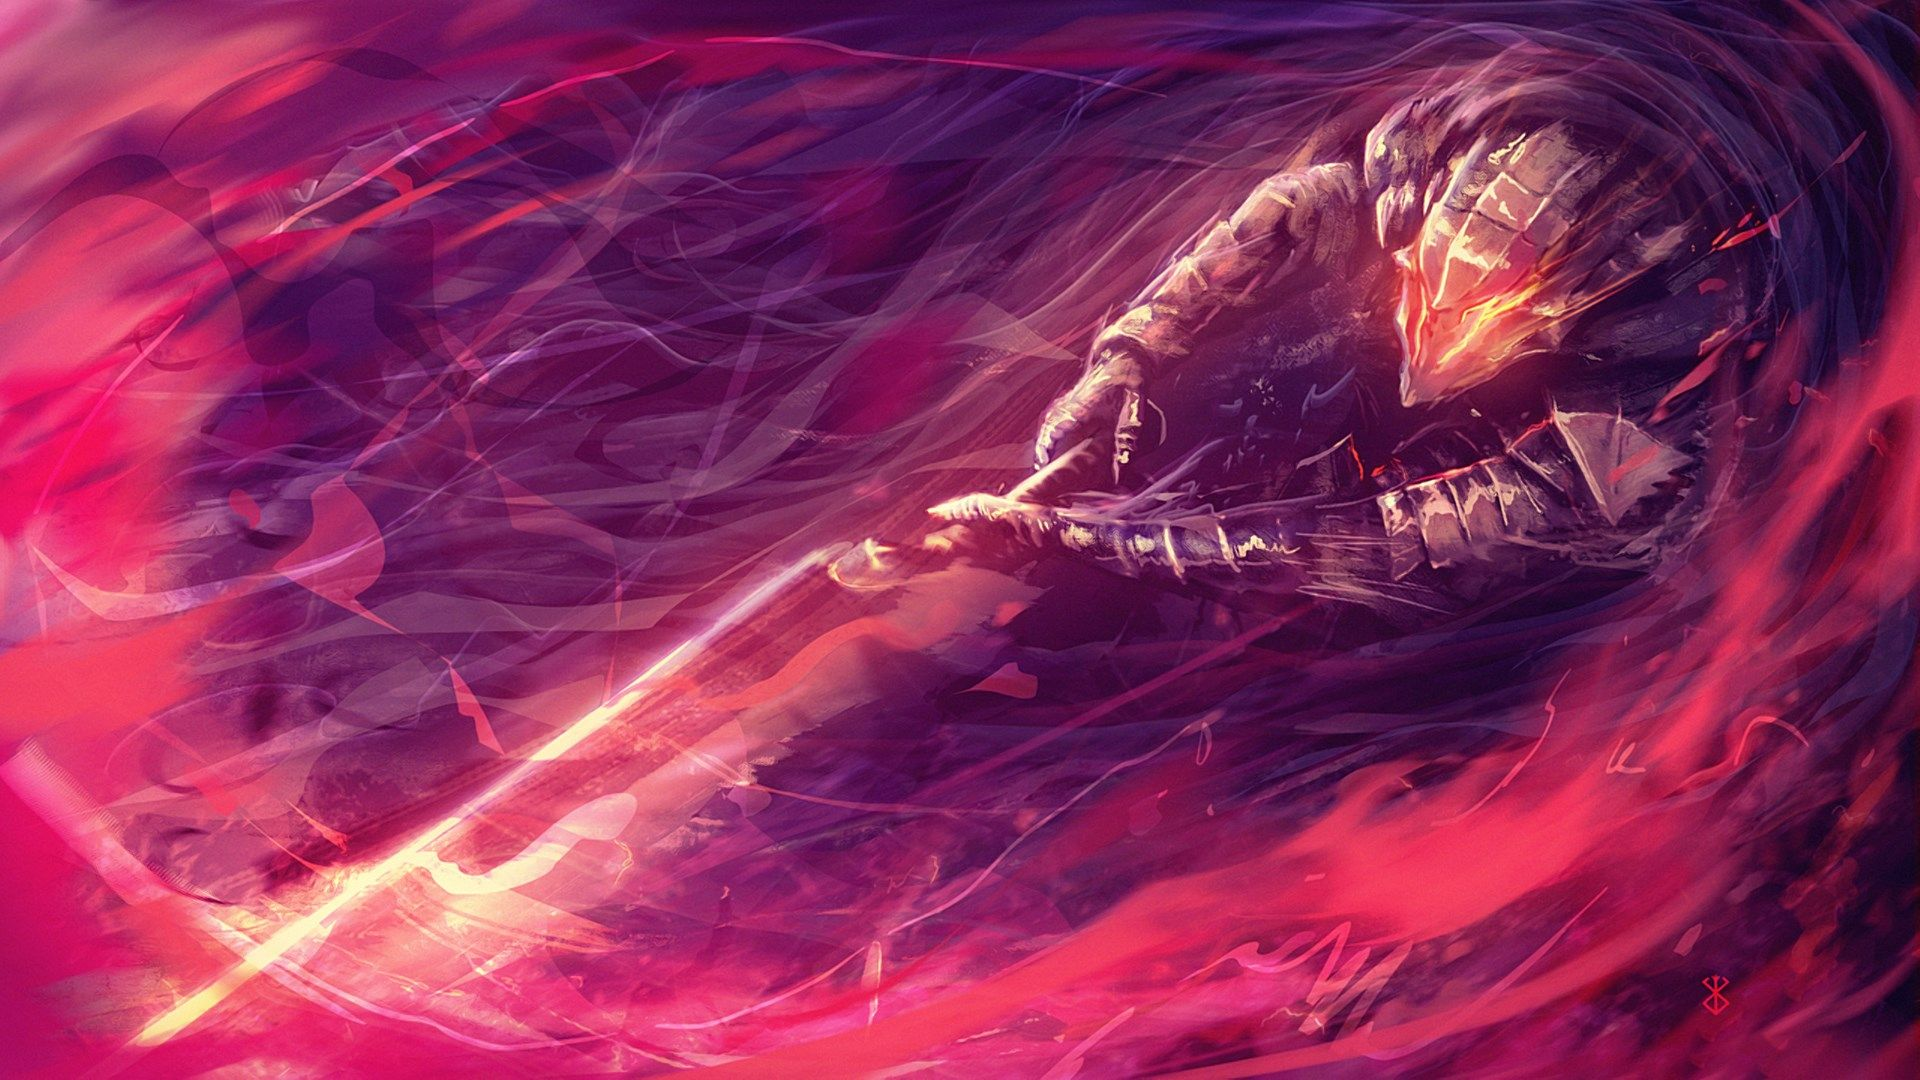 1920x1080 Px High Resolution Wallpapers Berserk Image By Wadsworth